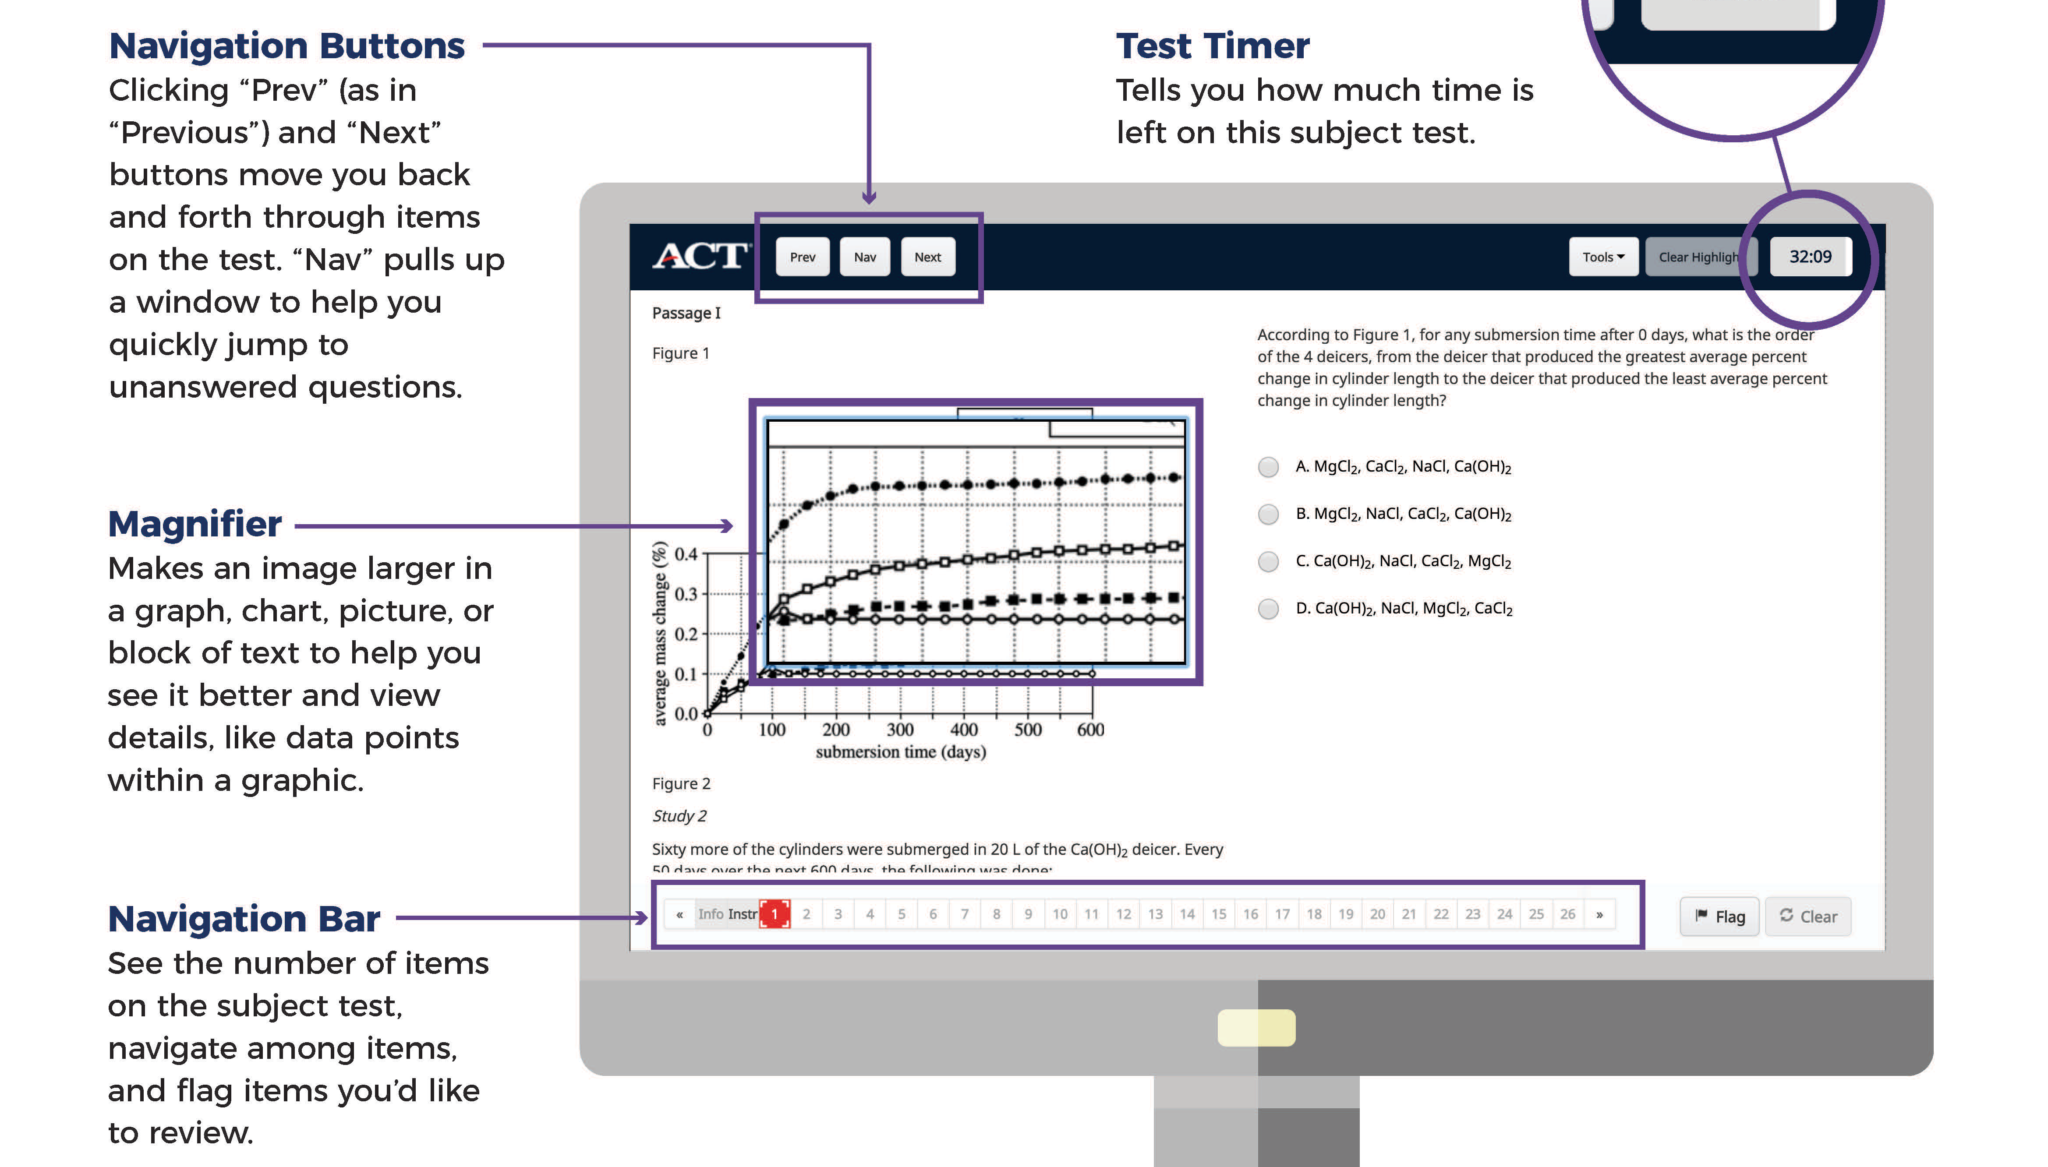 Computer Based Testing Tools Factsheet